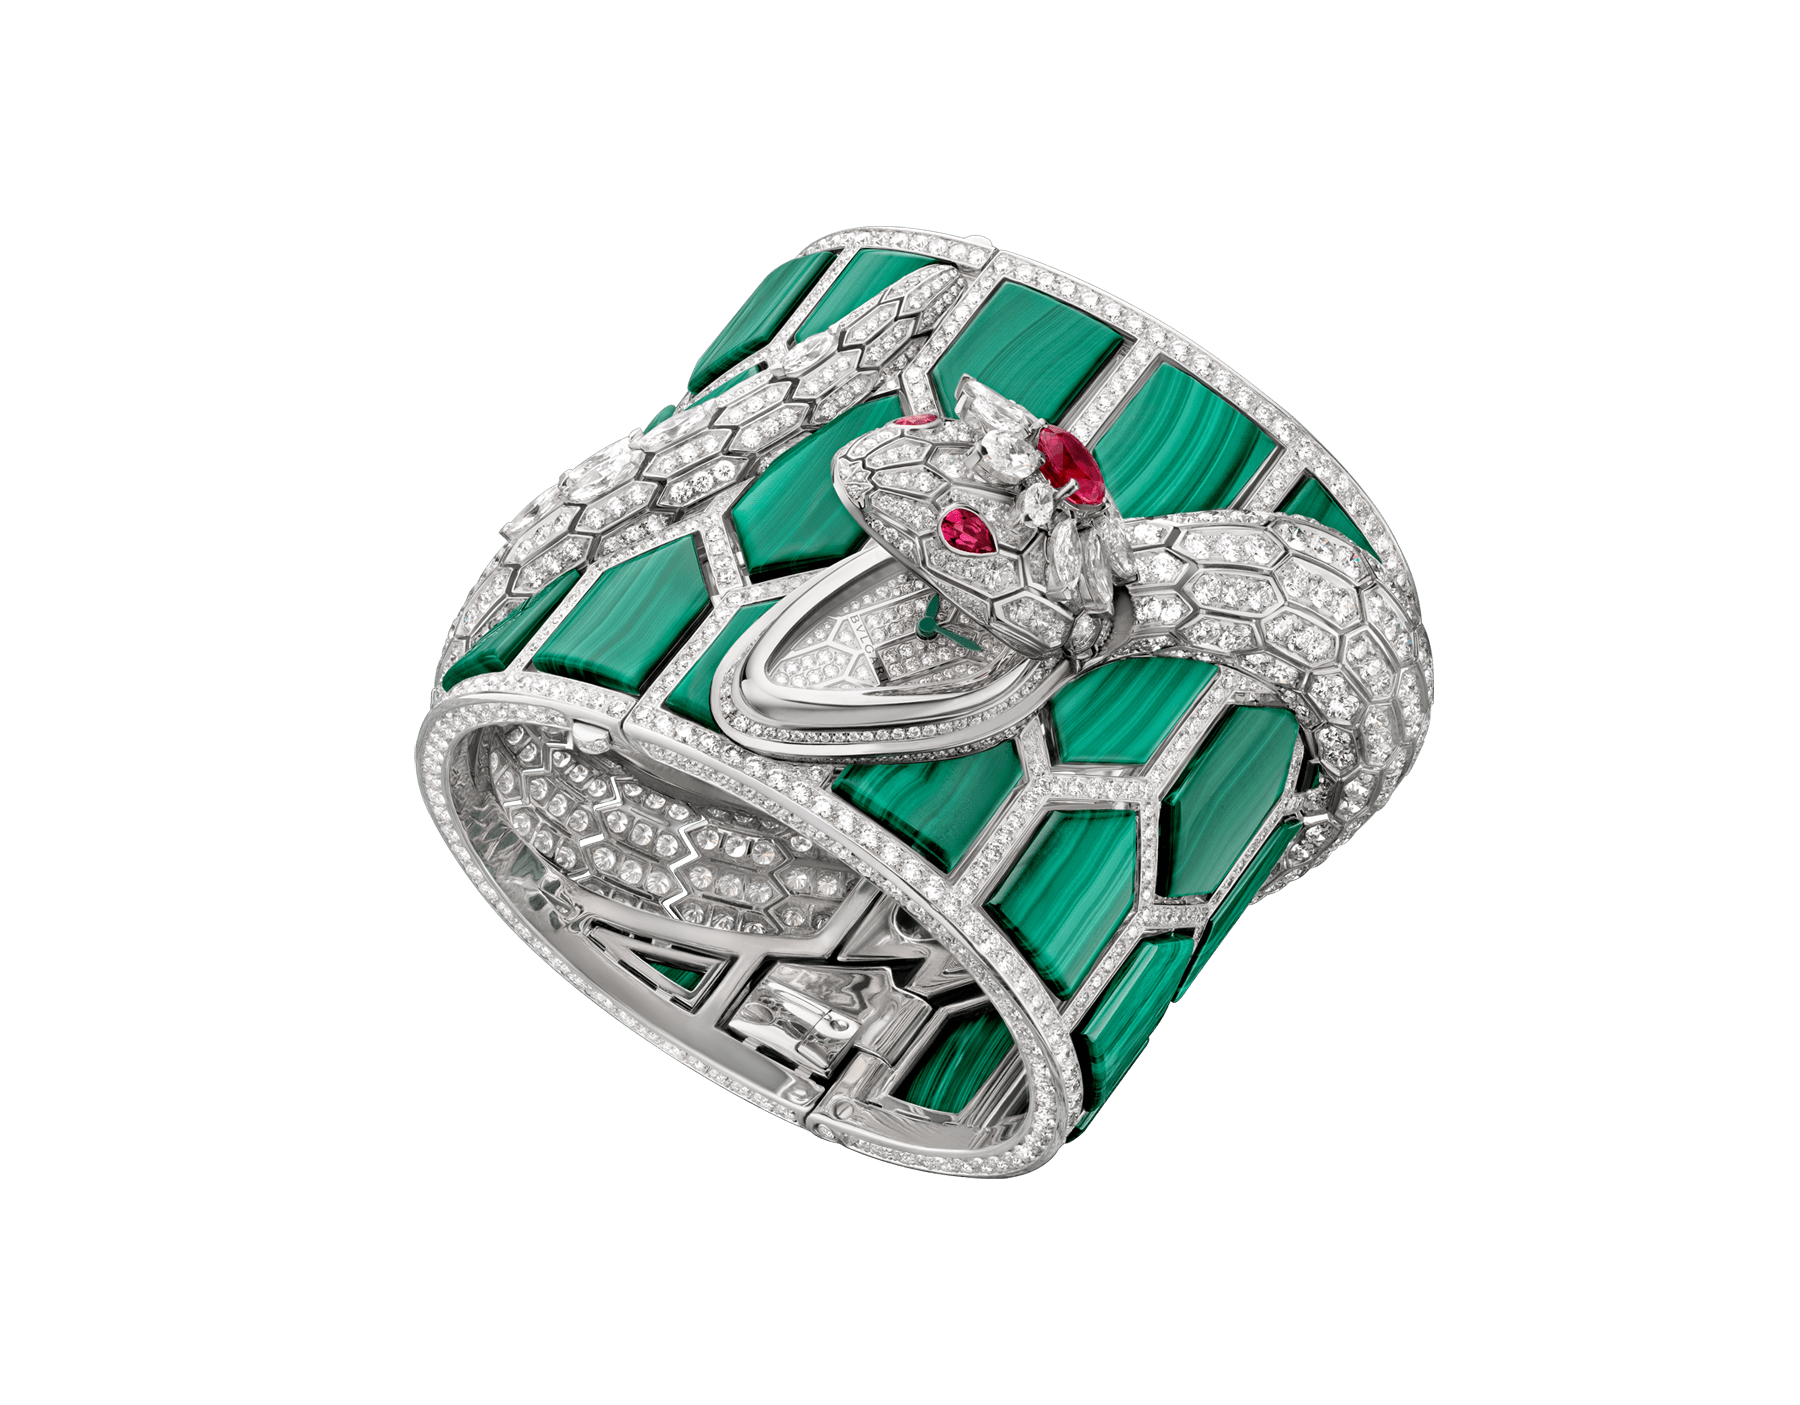 Serpenti Secret Watch with quartz movement, 18 kt white gold handcuff set with malachite elements and brilliant-cut diamonds, body of a snake set with brilliant-cut and marquise-shaped diamonds, one round brilliant-cut rubellite and pear-shaped rubellite eyes 102986 image 1